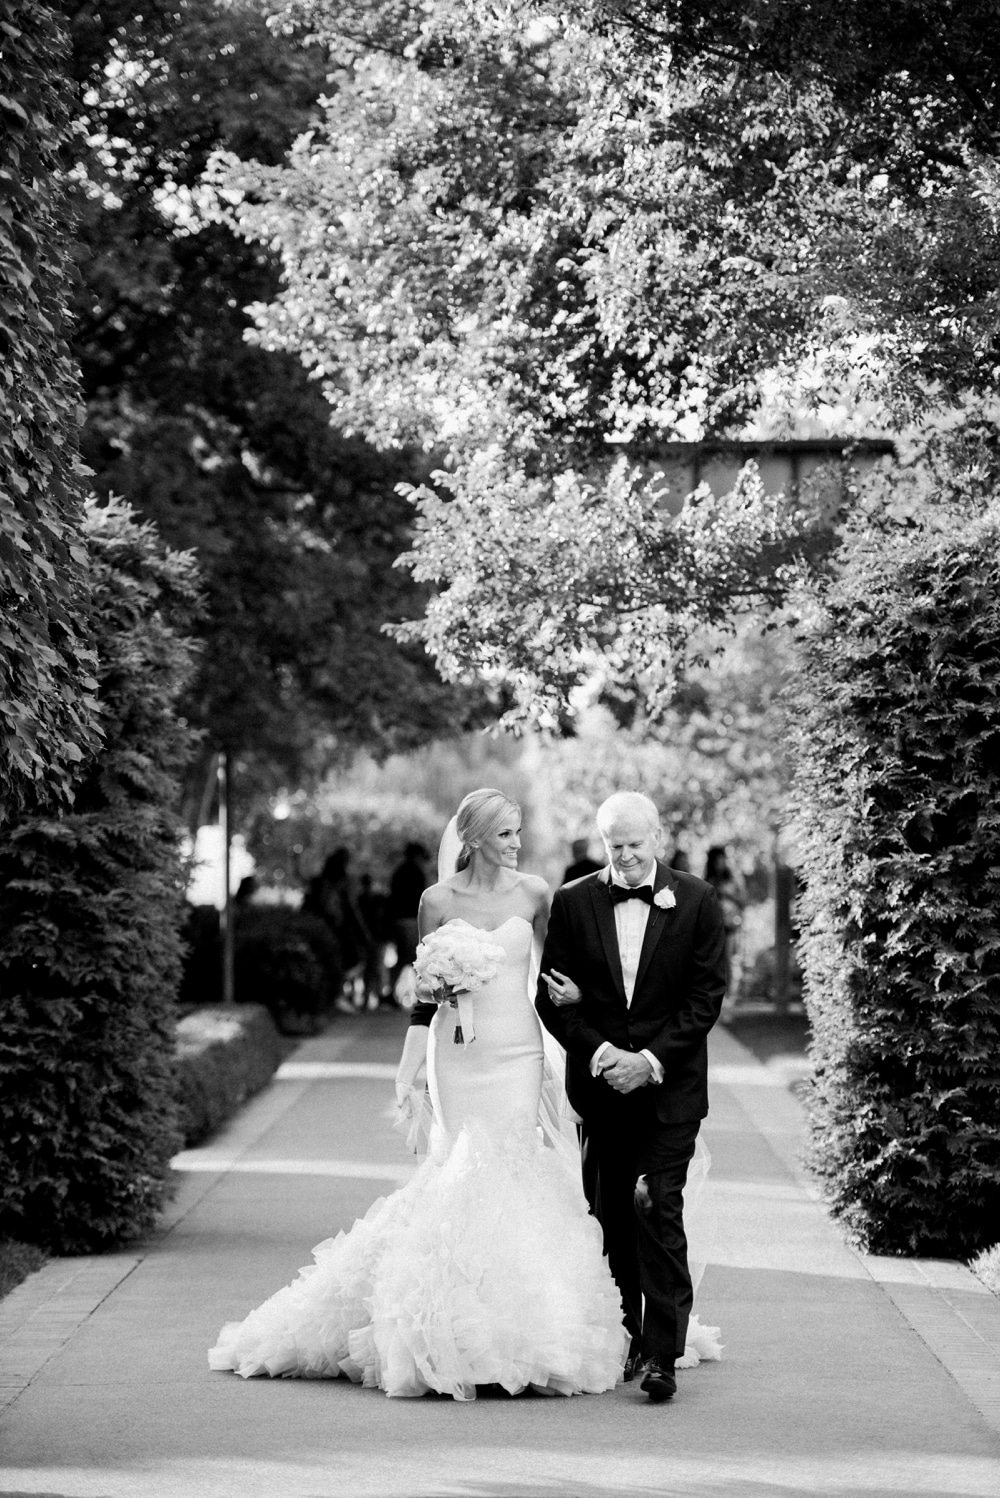 kristin-la-voie-photography-Chicago-Botanic-Garden-Wedding-photographer-rose-terrace-174